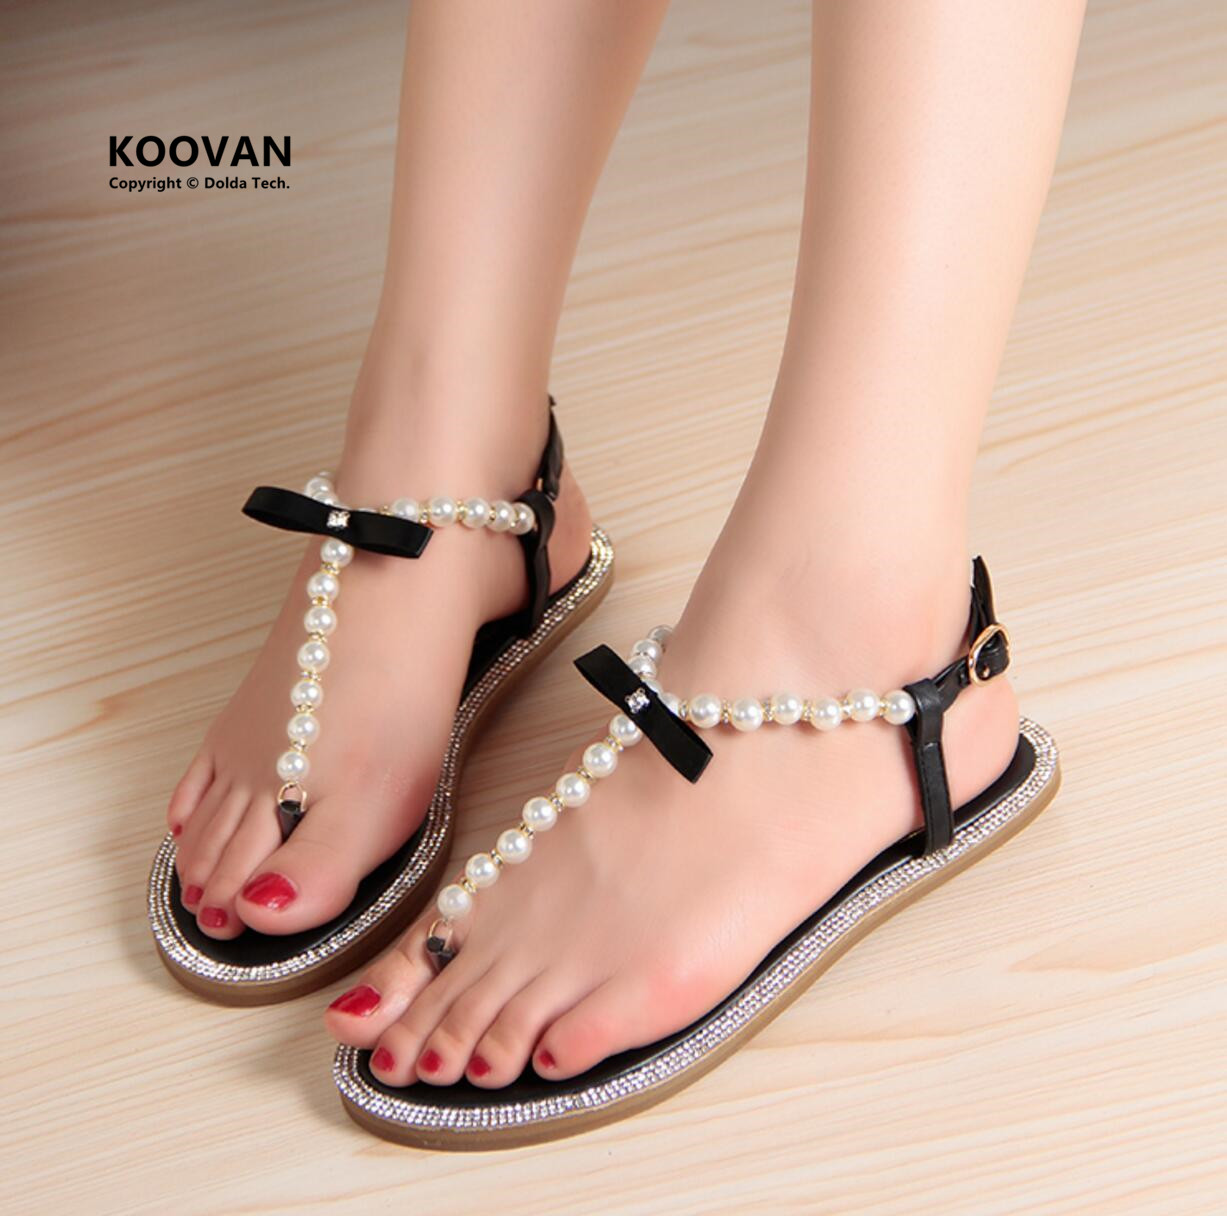 Koovan Women Sandals New 2017 Summer Fashion Shoes Bow ...